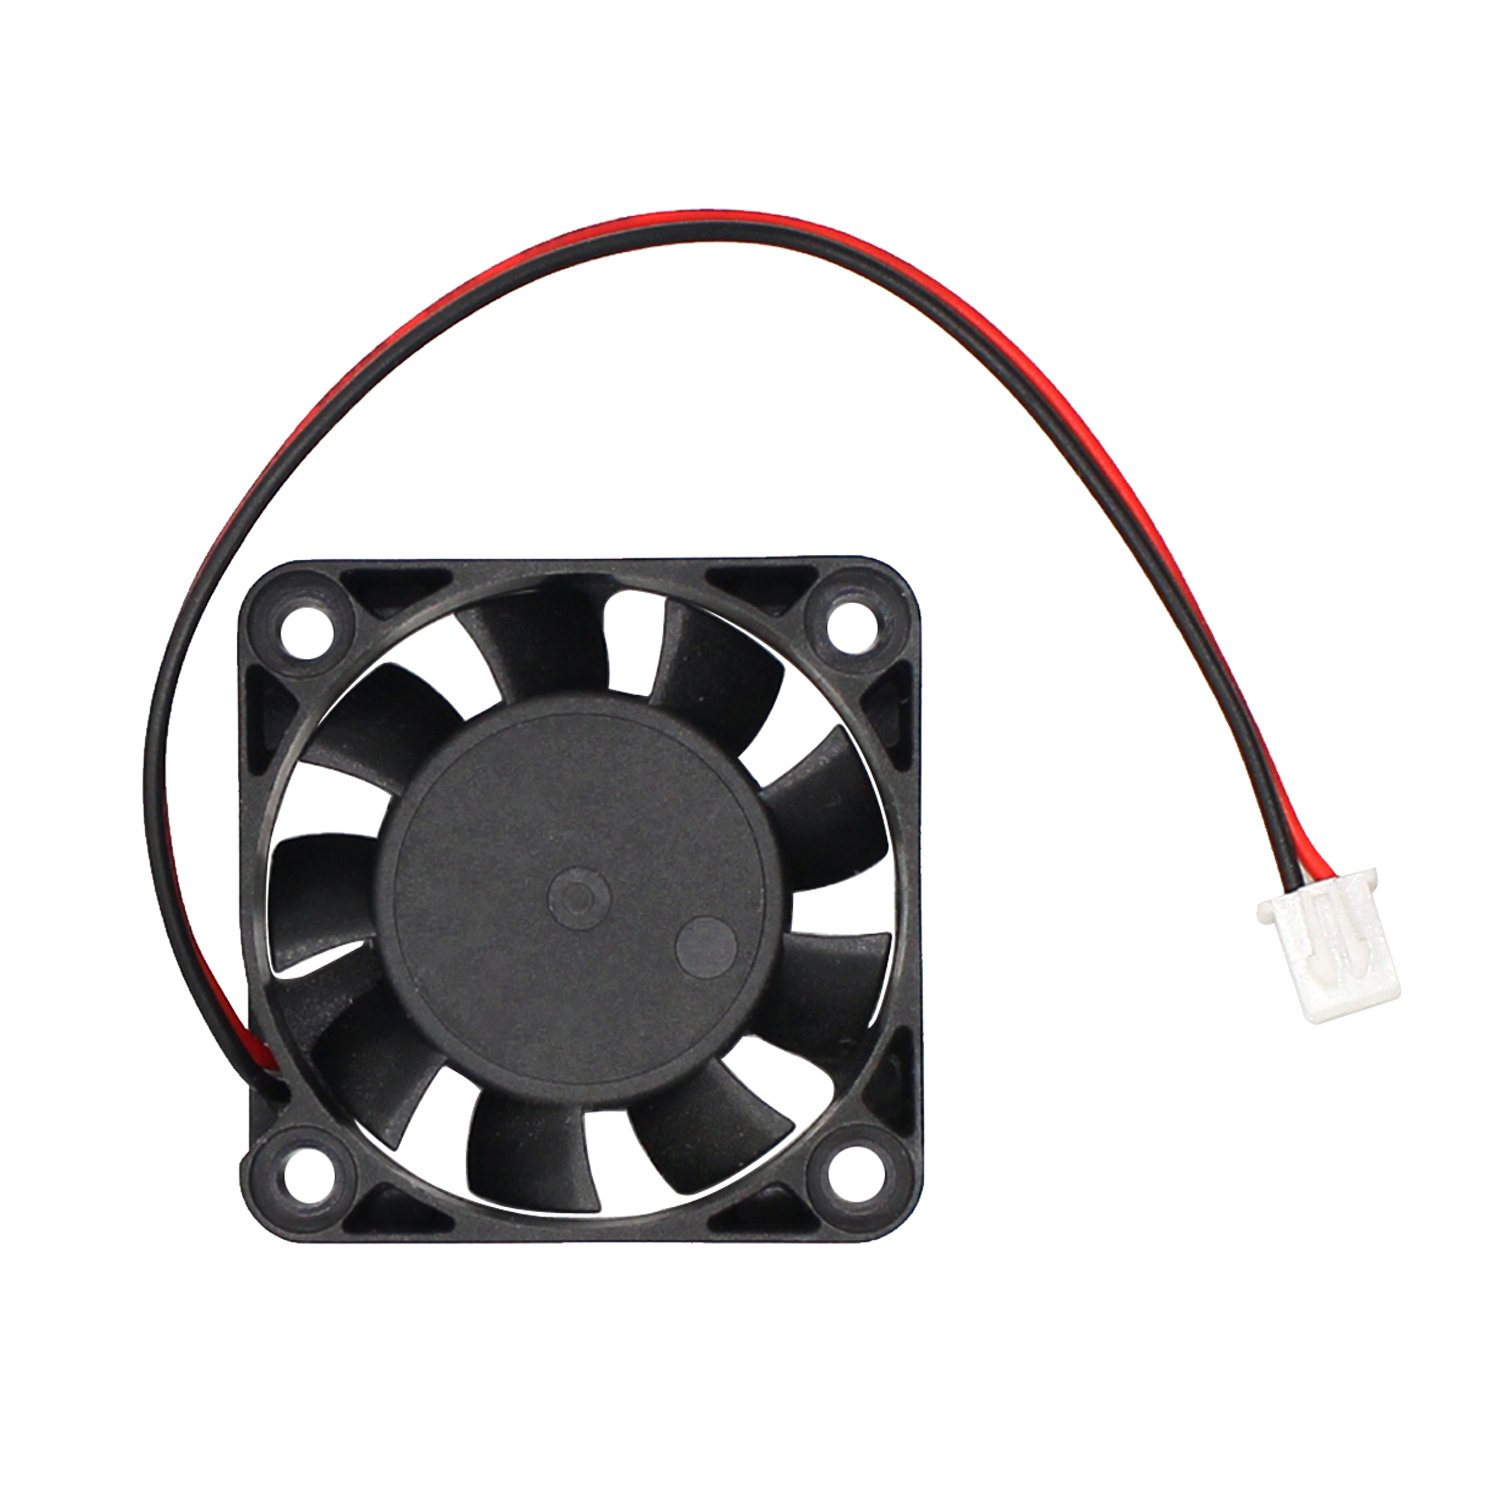 2-packs 40 x 40 x 10mm 4010 12V 0.10A Brushless DC Cooling Fan 2pin AV-F4010MB UL CE by AMBEYOND FAN (Image #7)